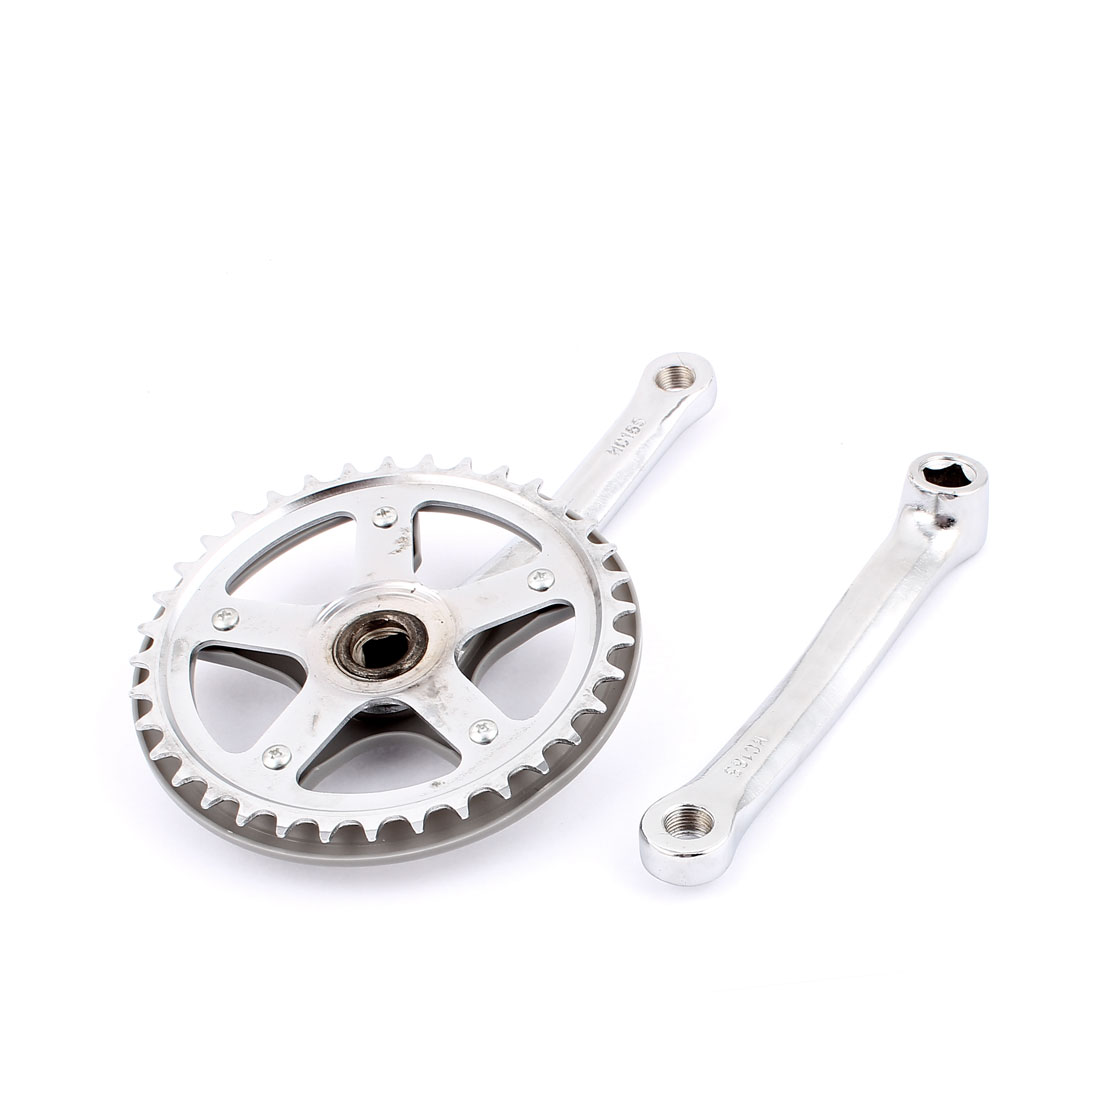 Road Bike Bicycle 15cm Dia Chainwheel Front Crankset 36 Teeth